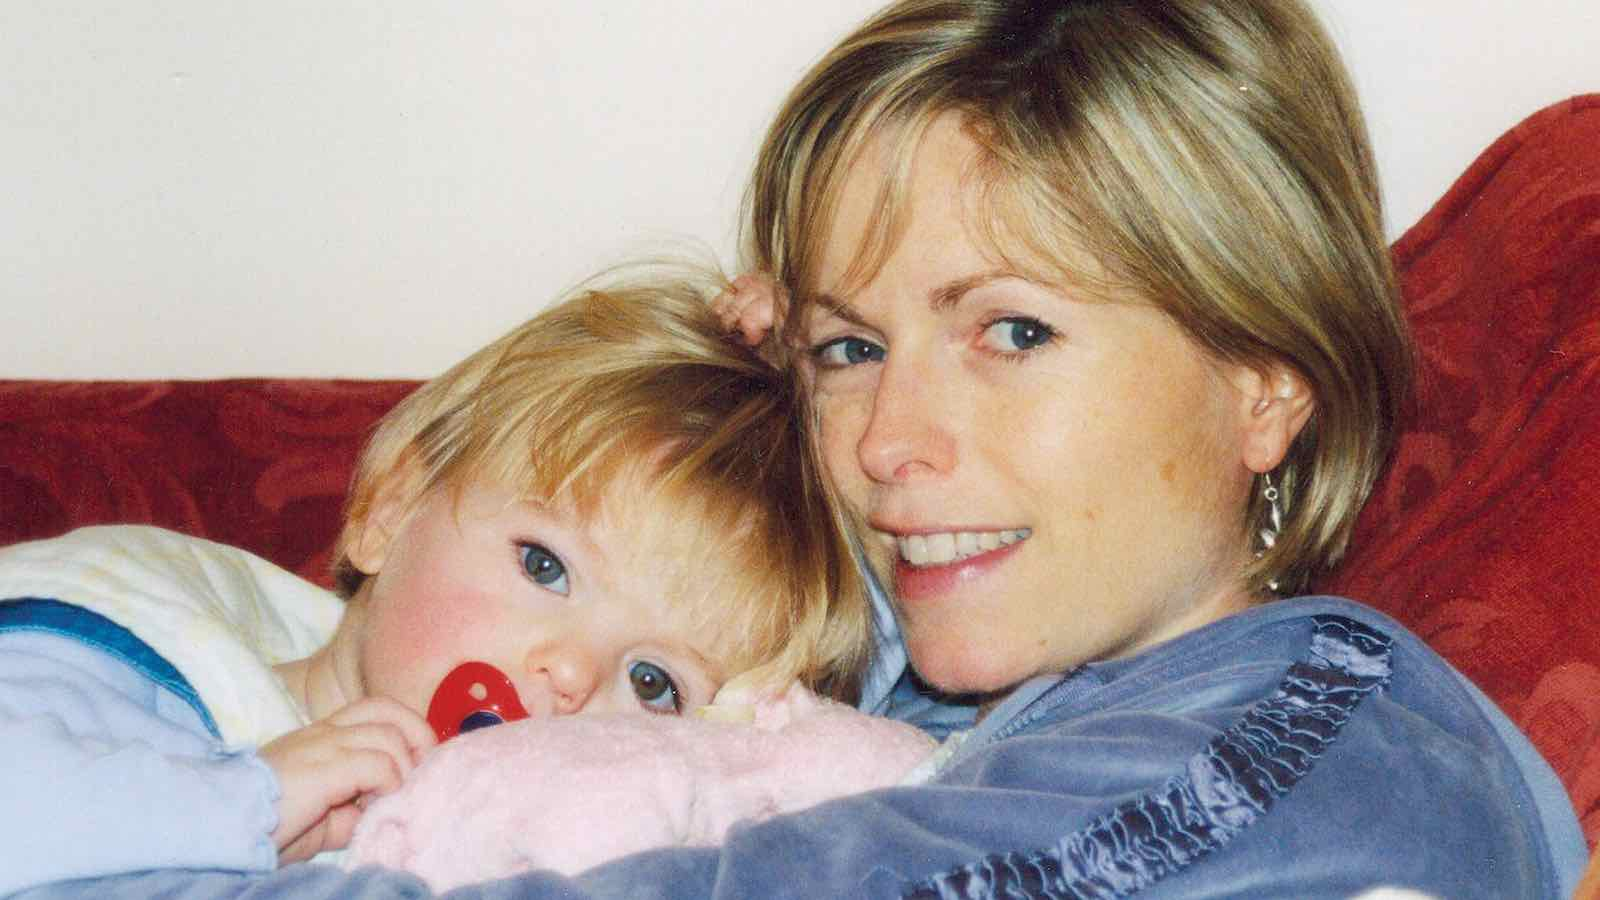 Film Daily 'Netflix' critique: 'The Disappearance of Madeleine McCann': Saddest true crime ever? The-Disappearance-of-Madeleine-McCann-5